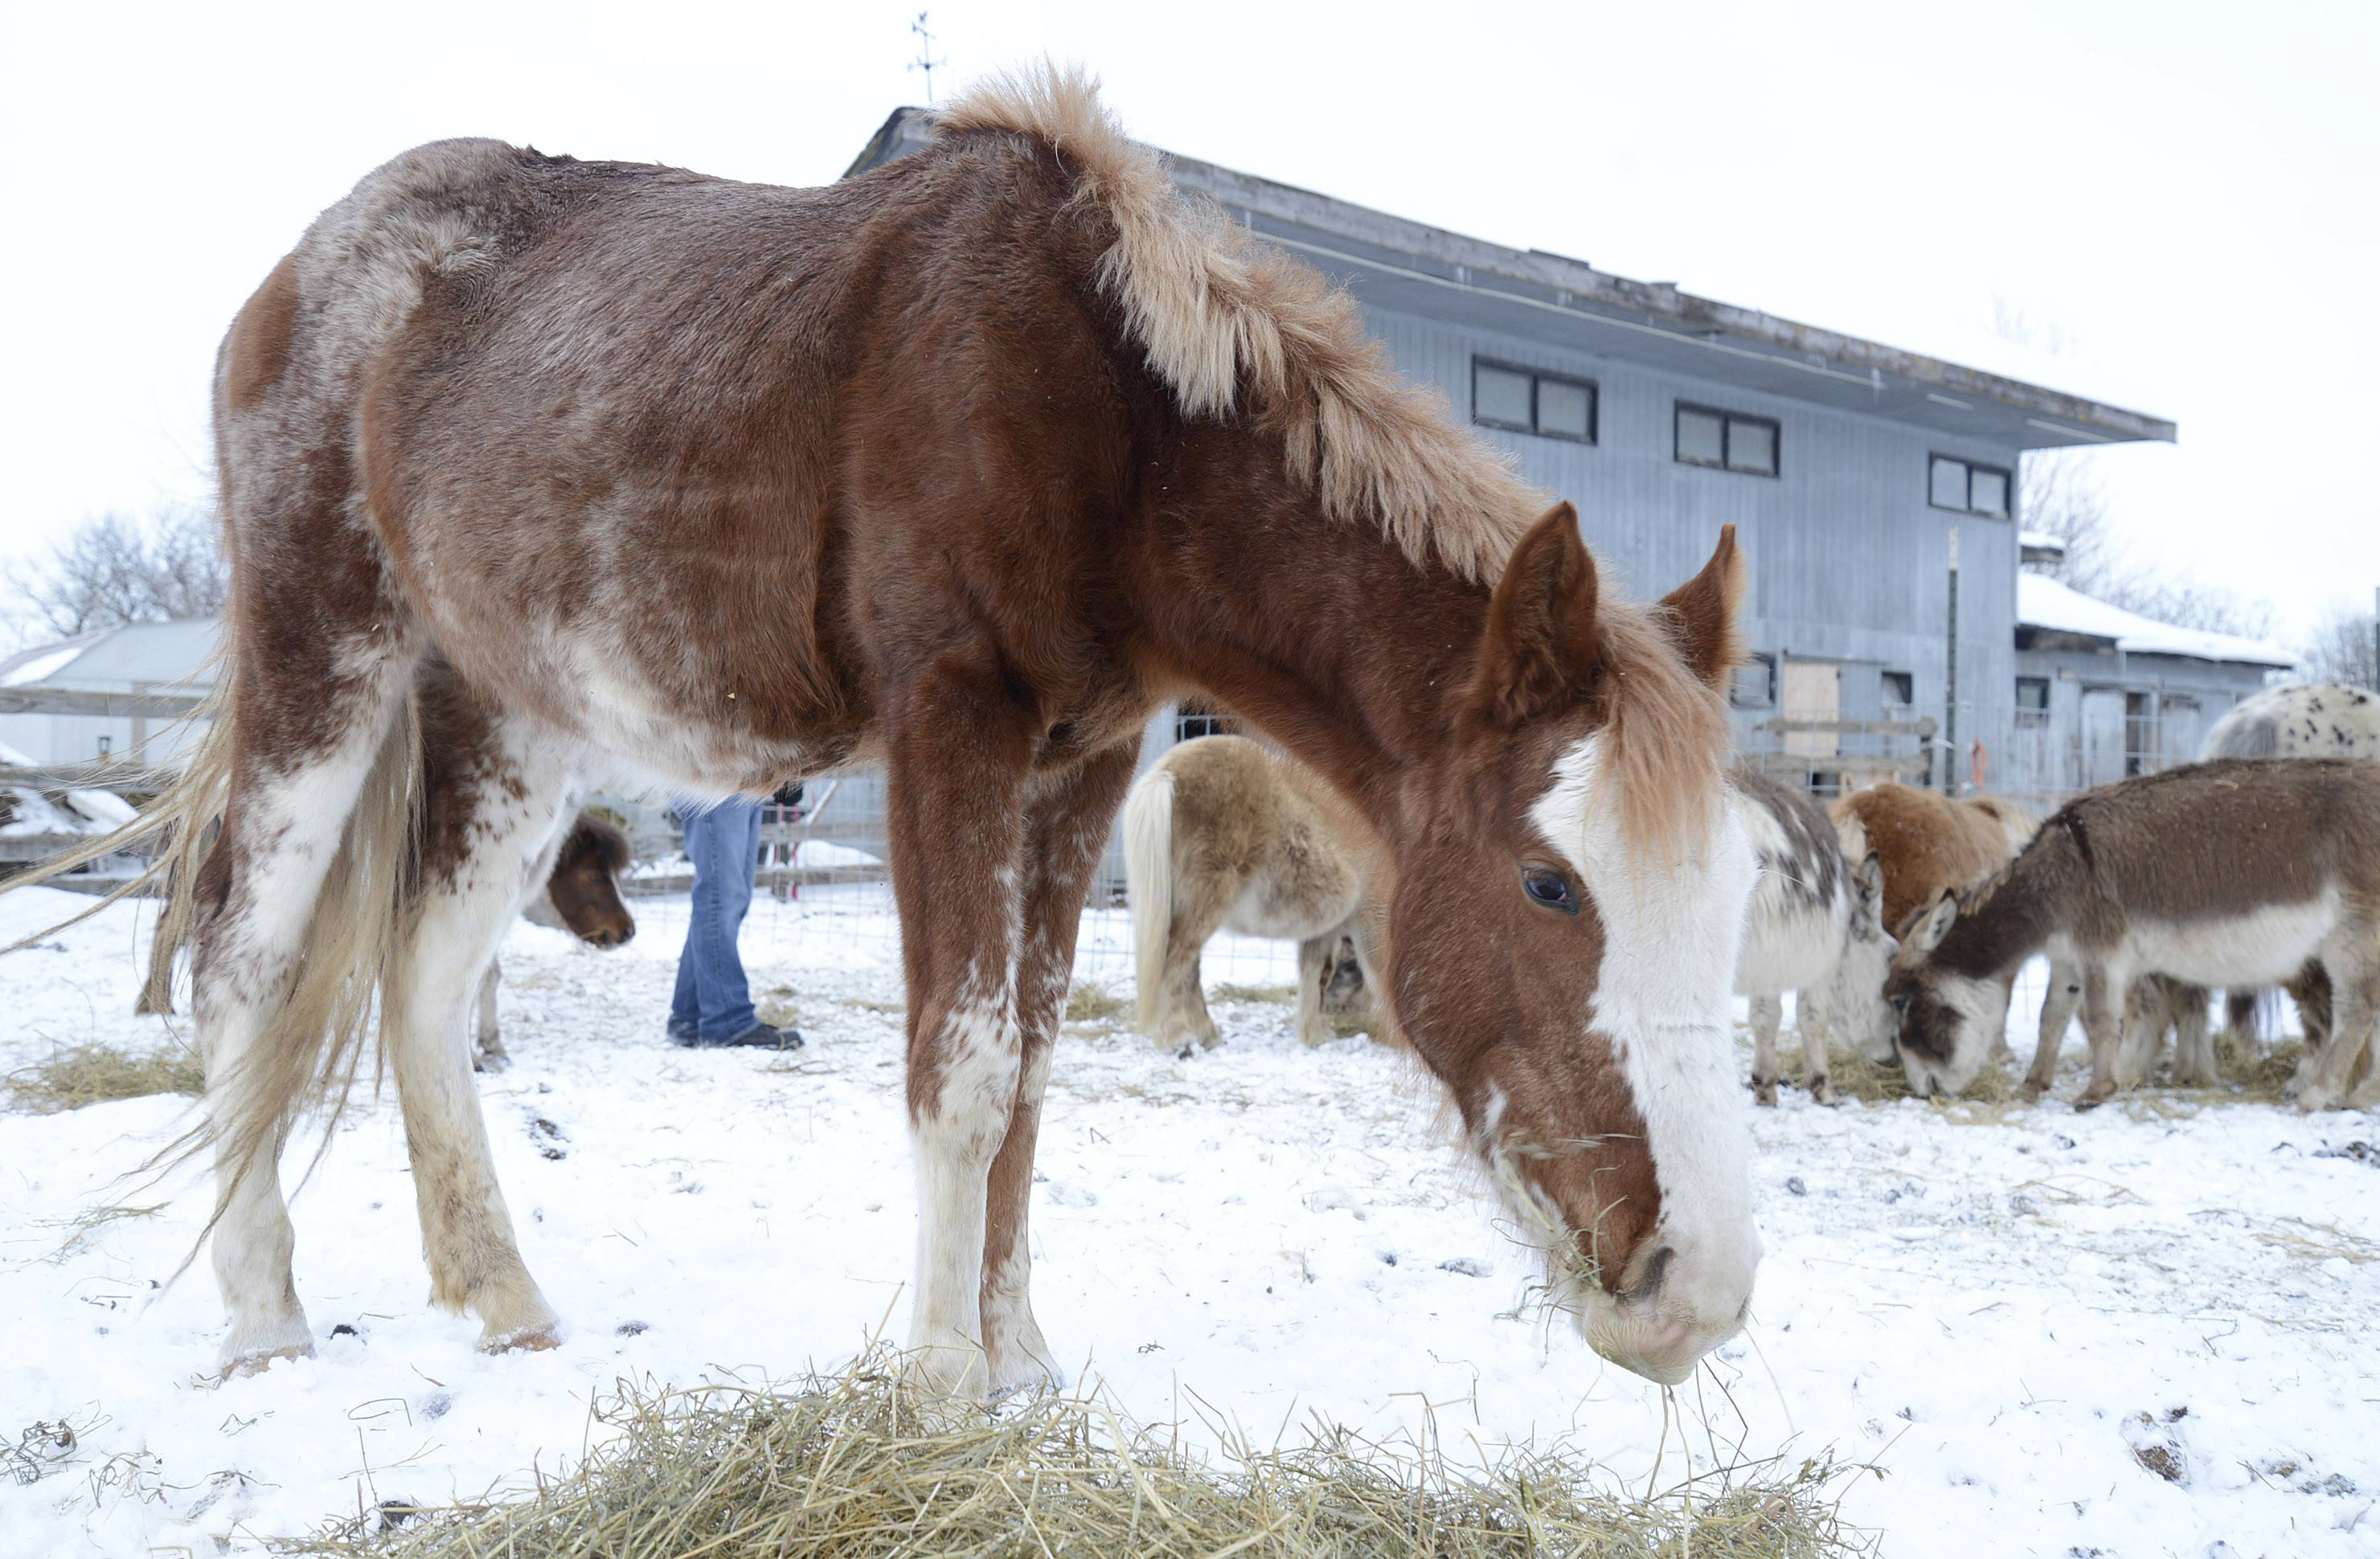 A malnourished horse feeds on hay in March 2014, after Kane County Animal Control took custody of animals owned by Stacy Fiebelkorn of Elgin.